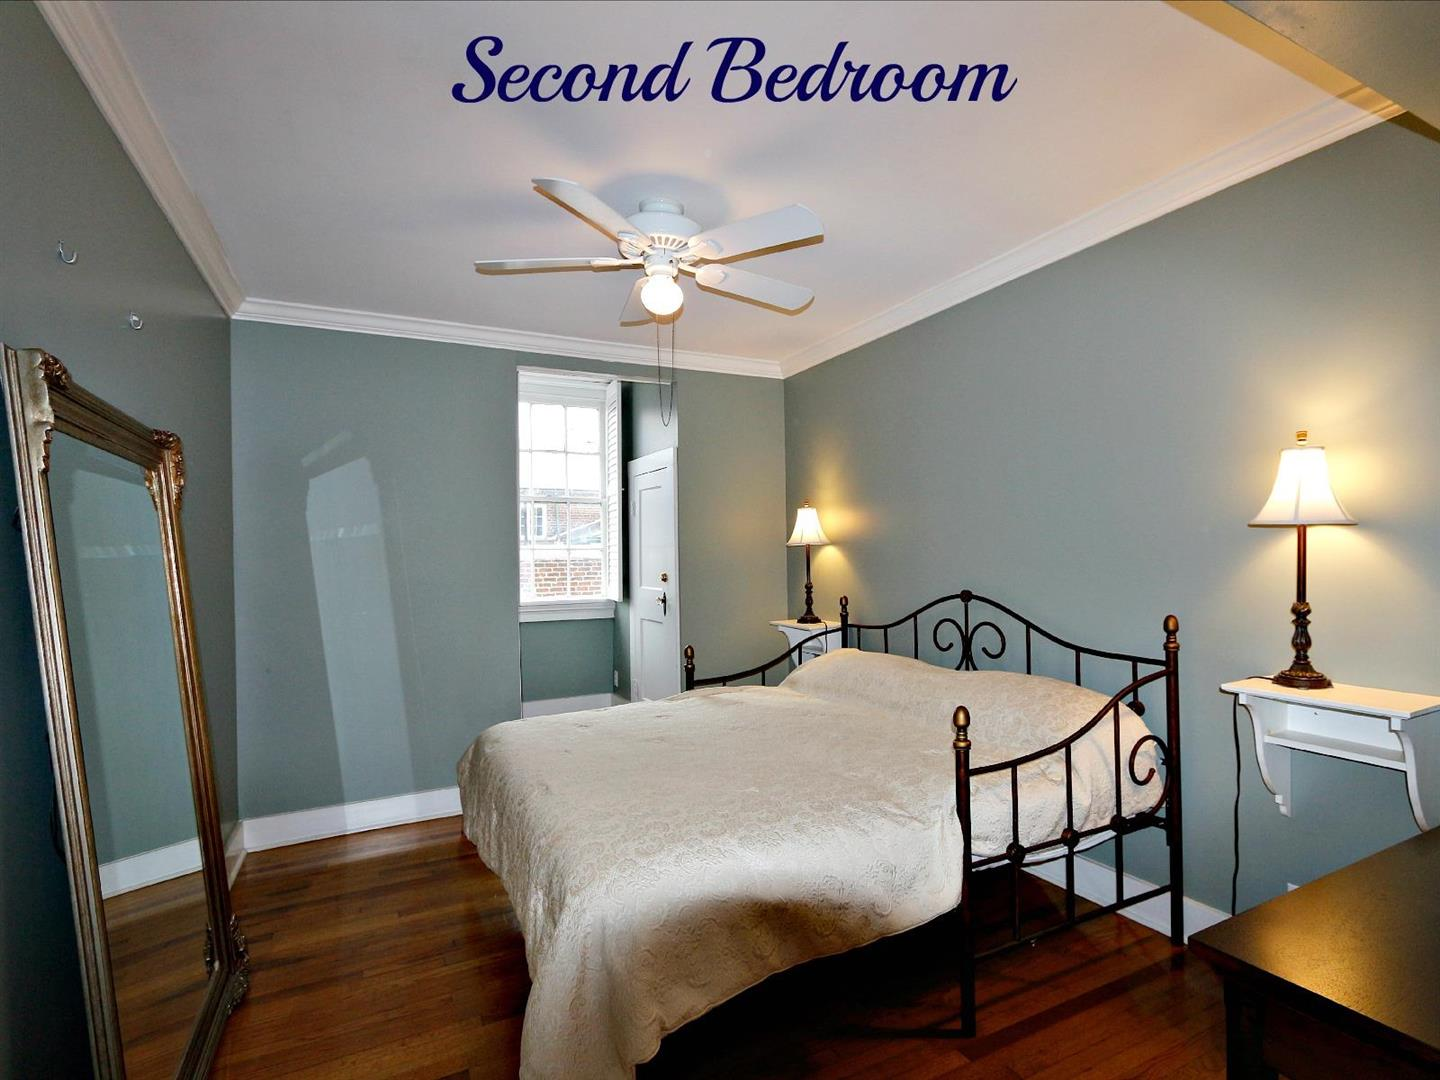 526MadisonCondo,2ndBedroom.jpg